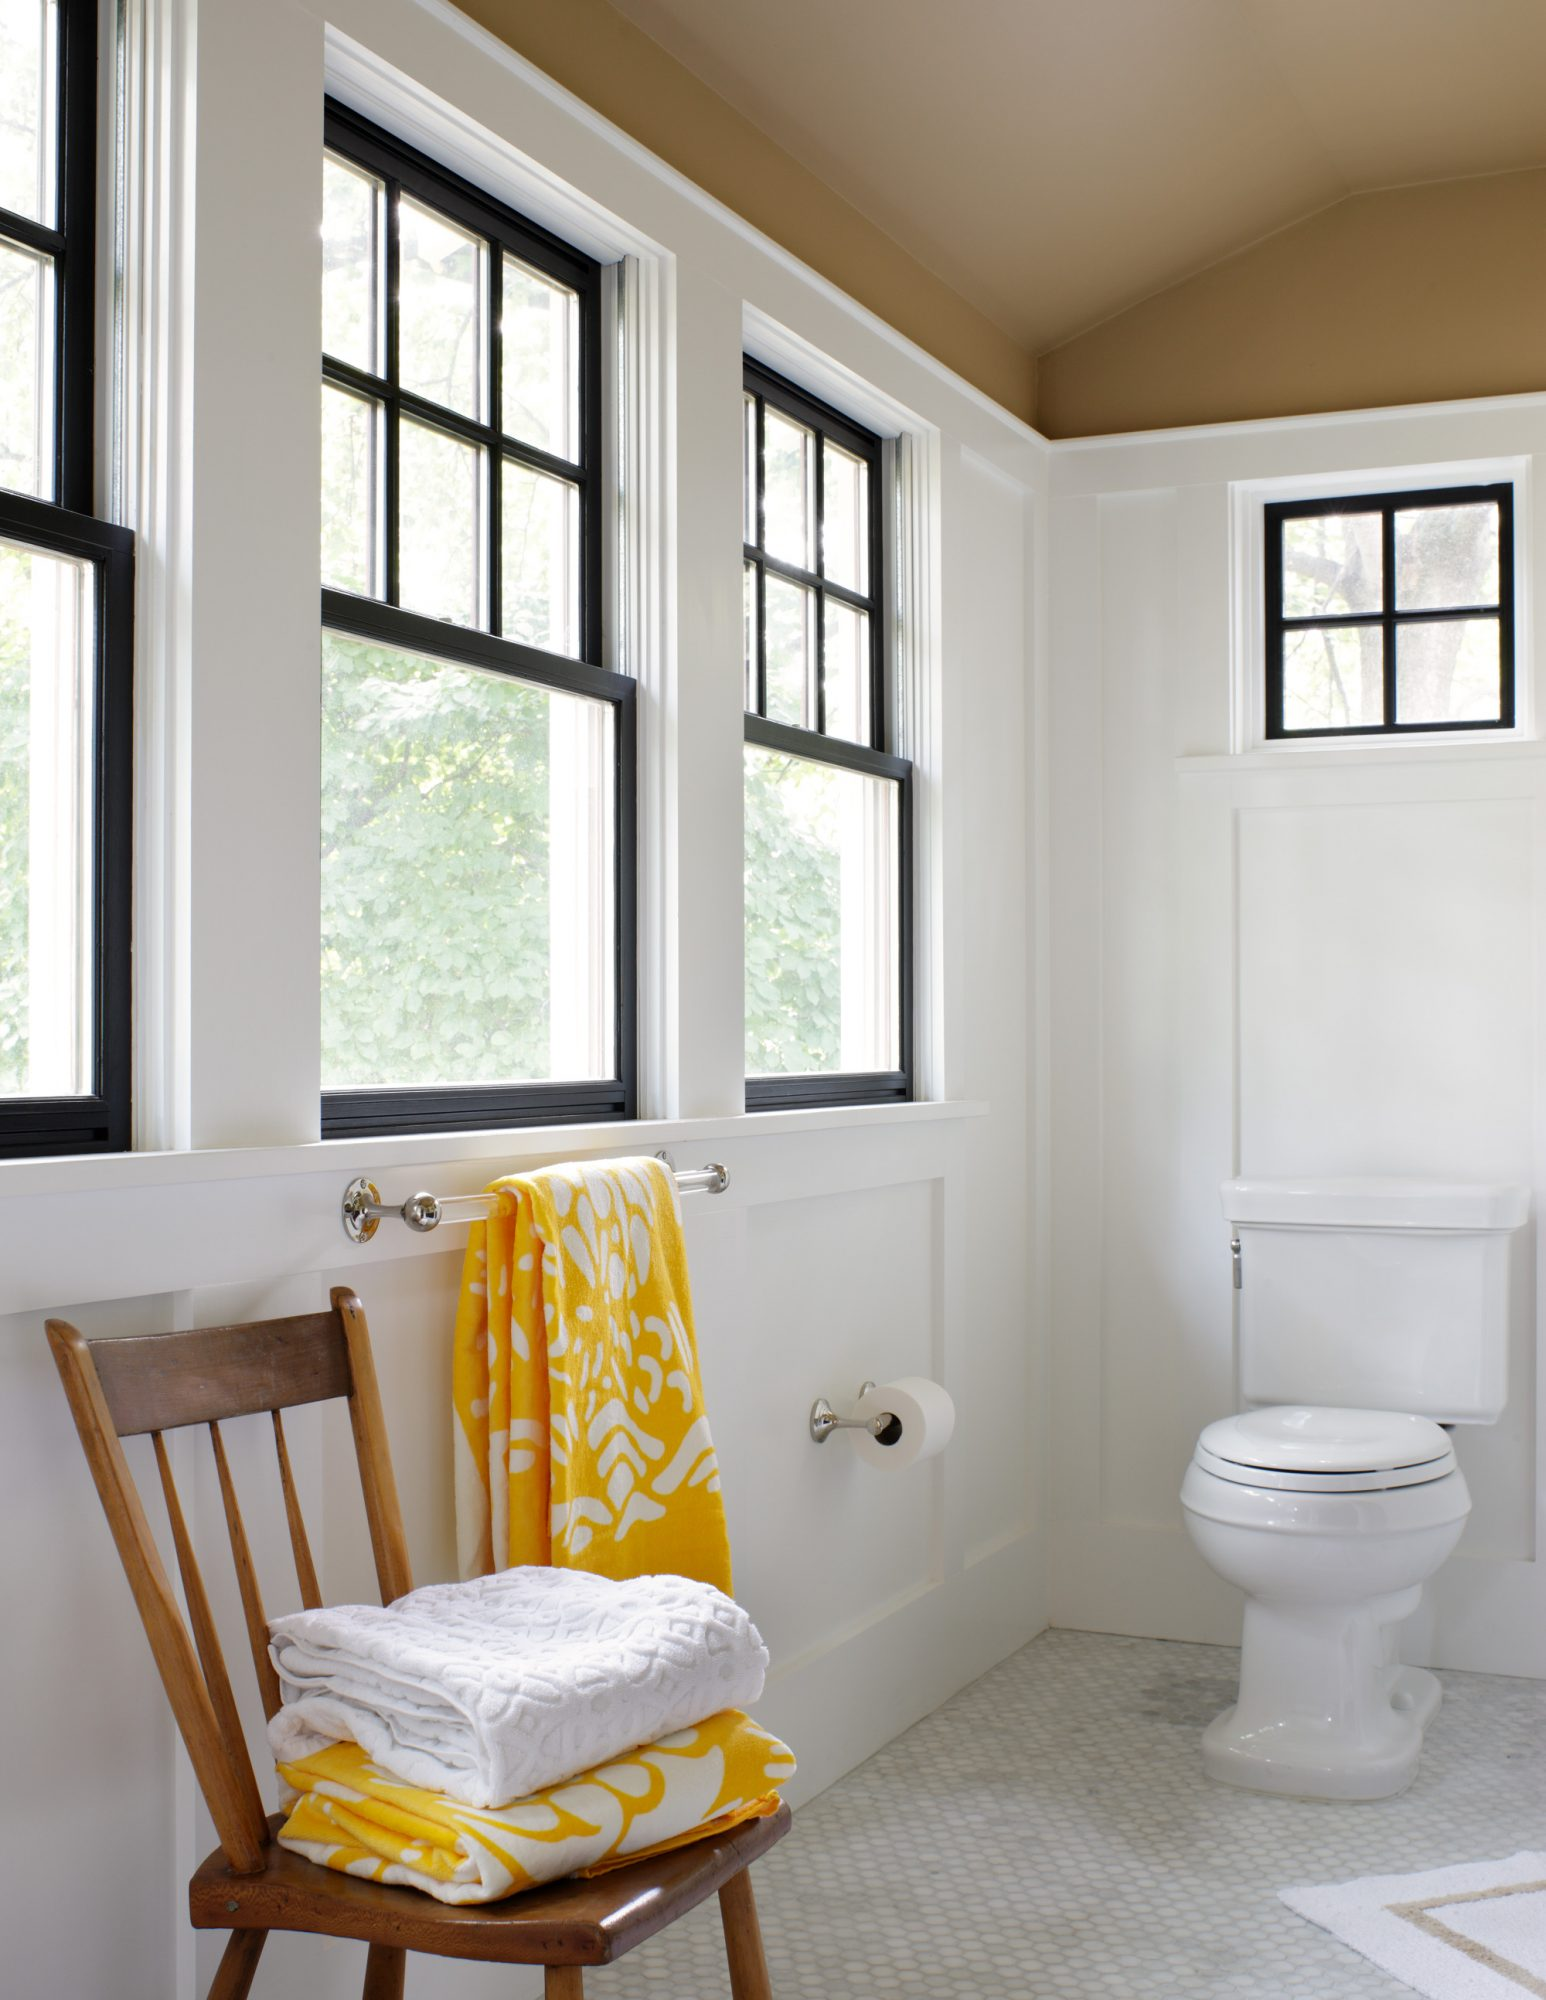 white bathroom black trim windows with chair holding towels